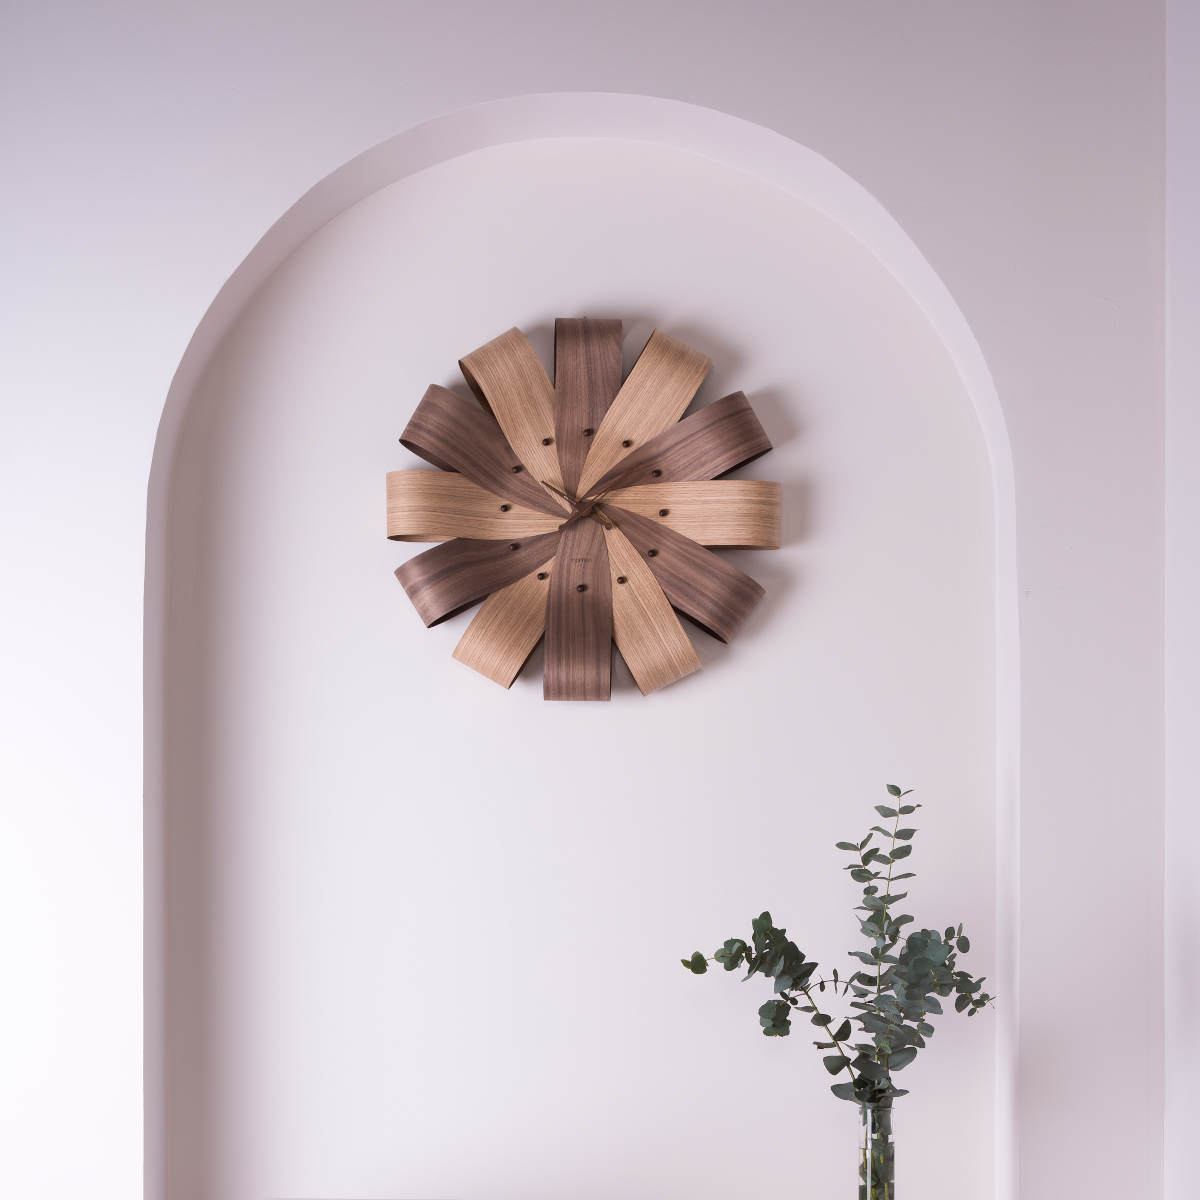 Design wall clock Ciclo by Nomon